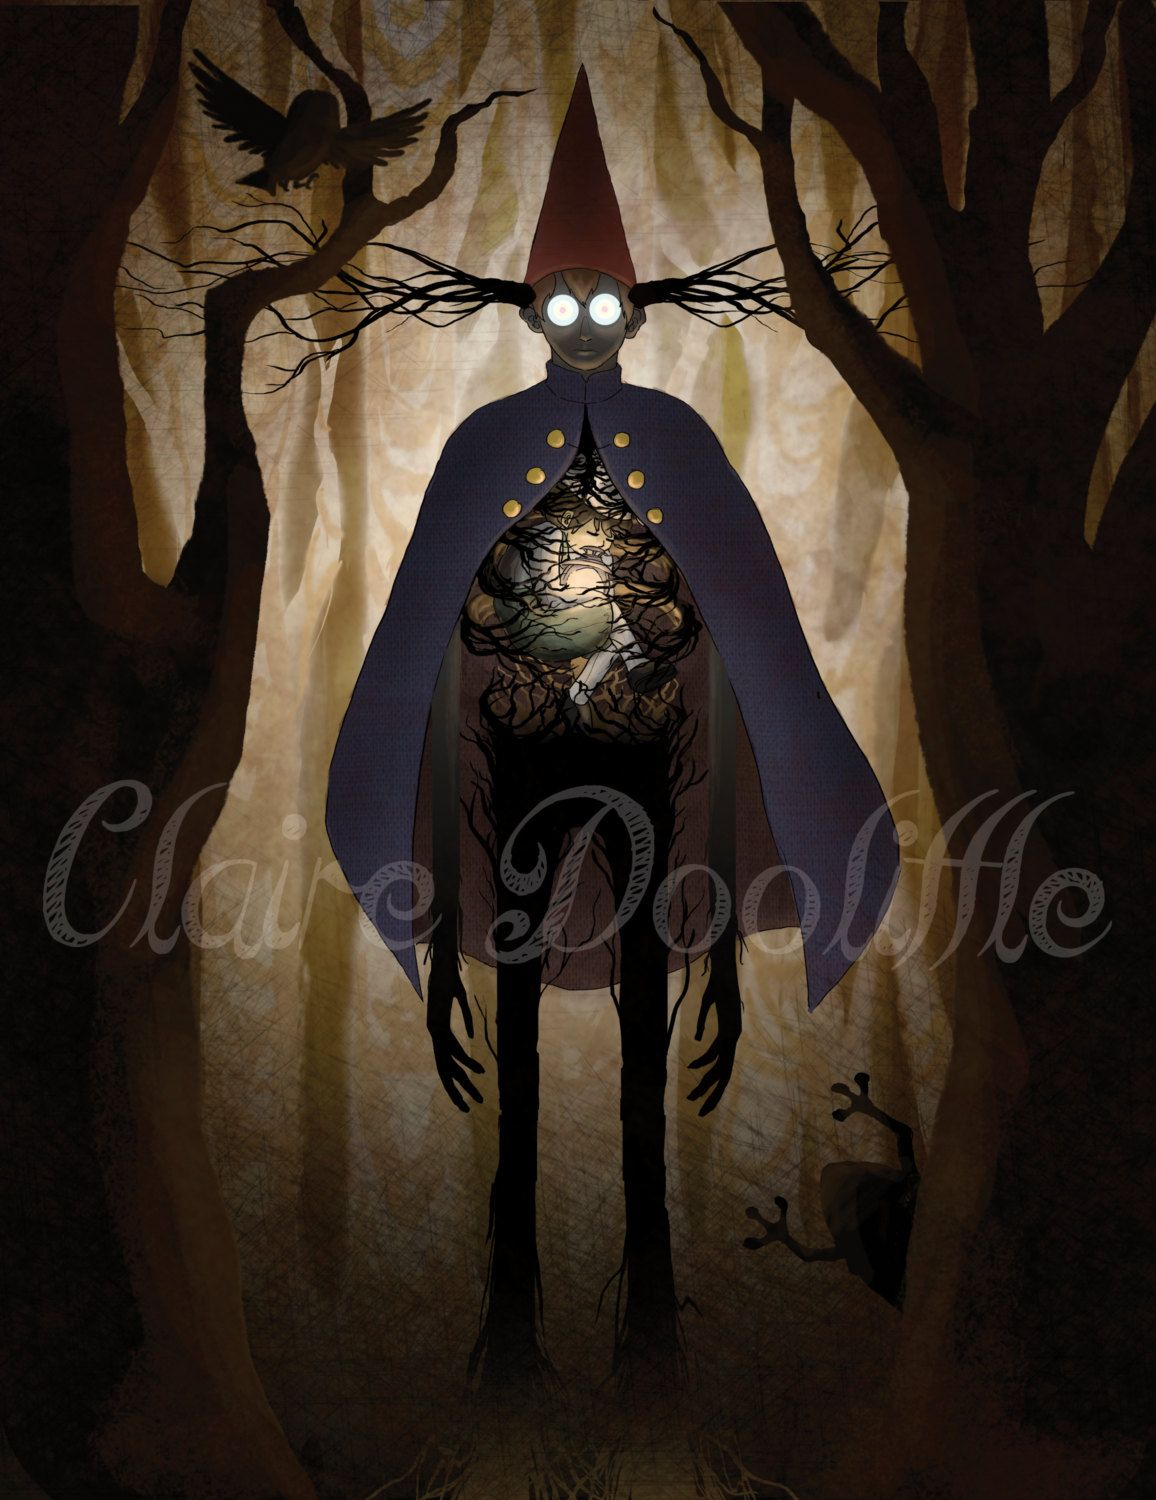 Over The Garden Wall The Beast Google Search Over The Garden Wall Pinterest